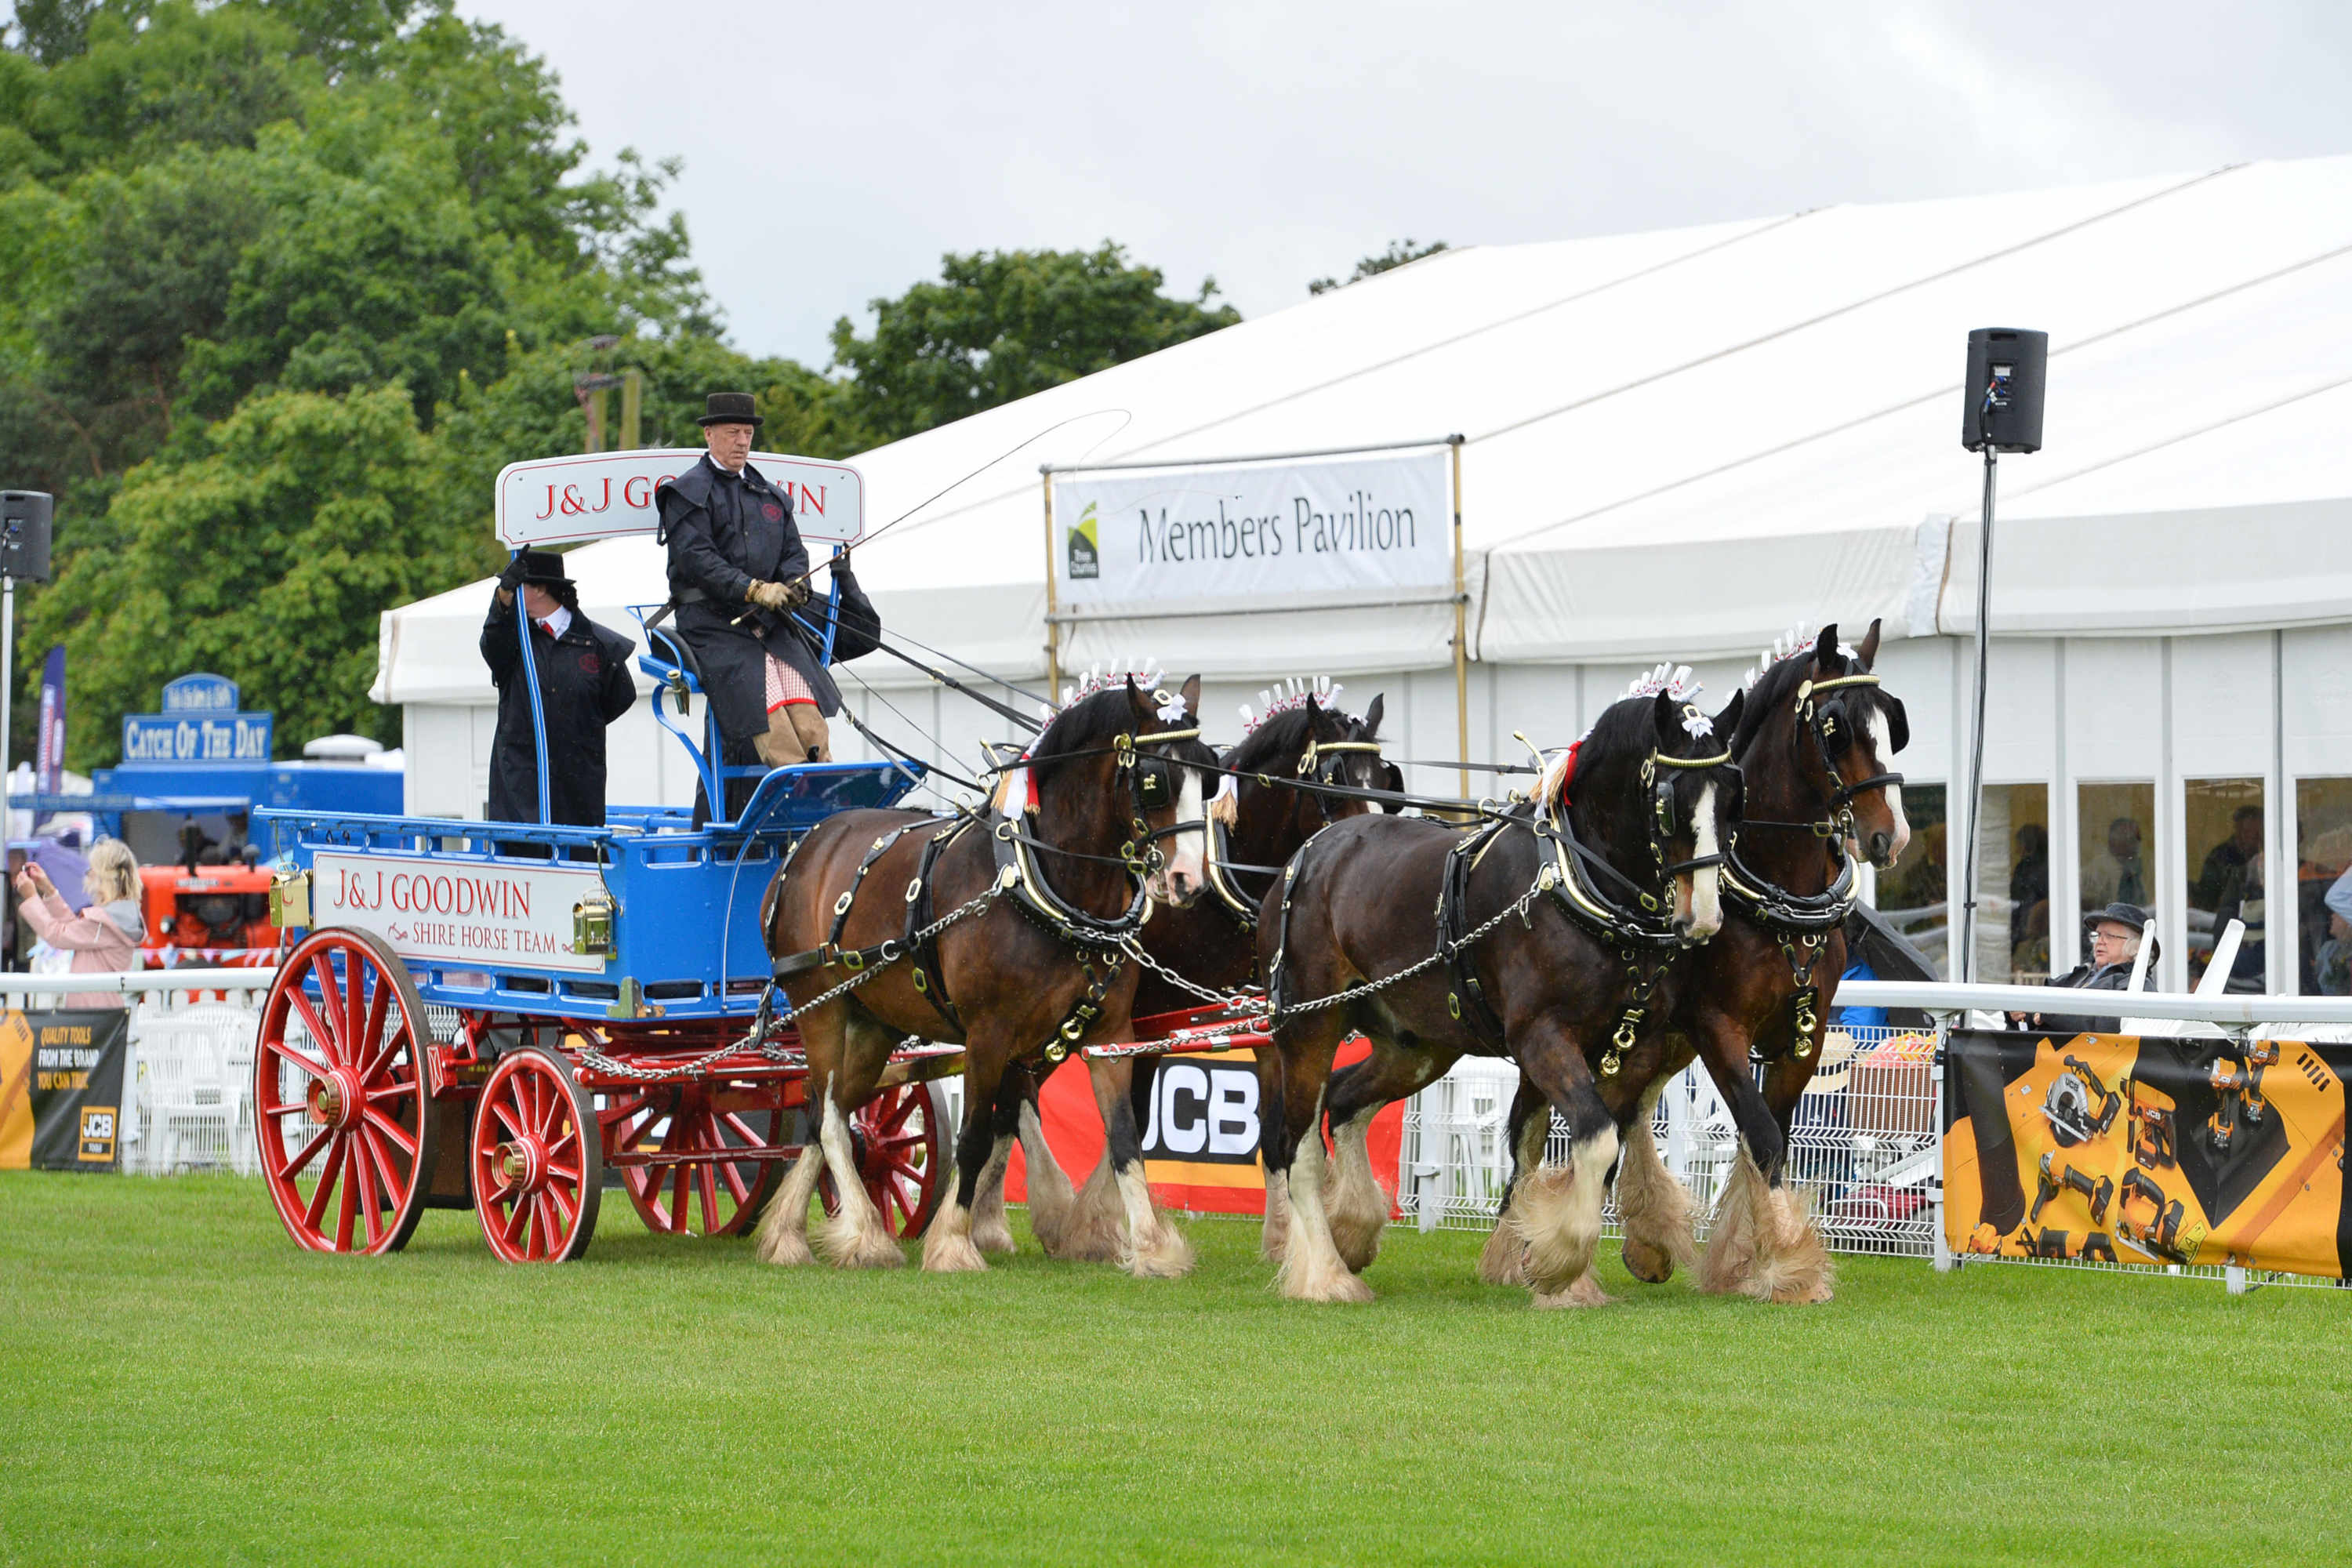 Equine Village at Royal Three Counties Show